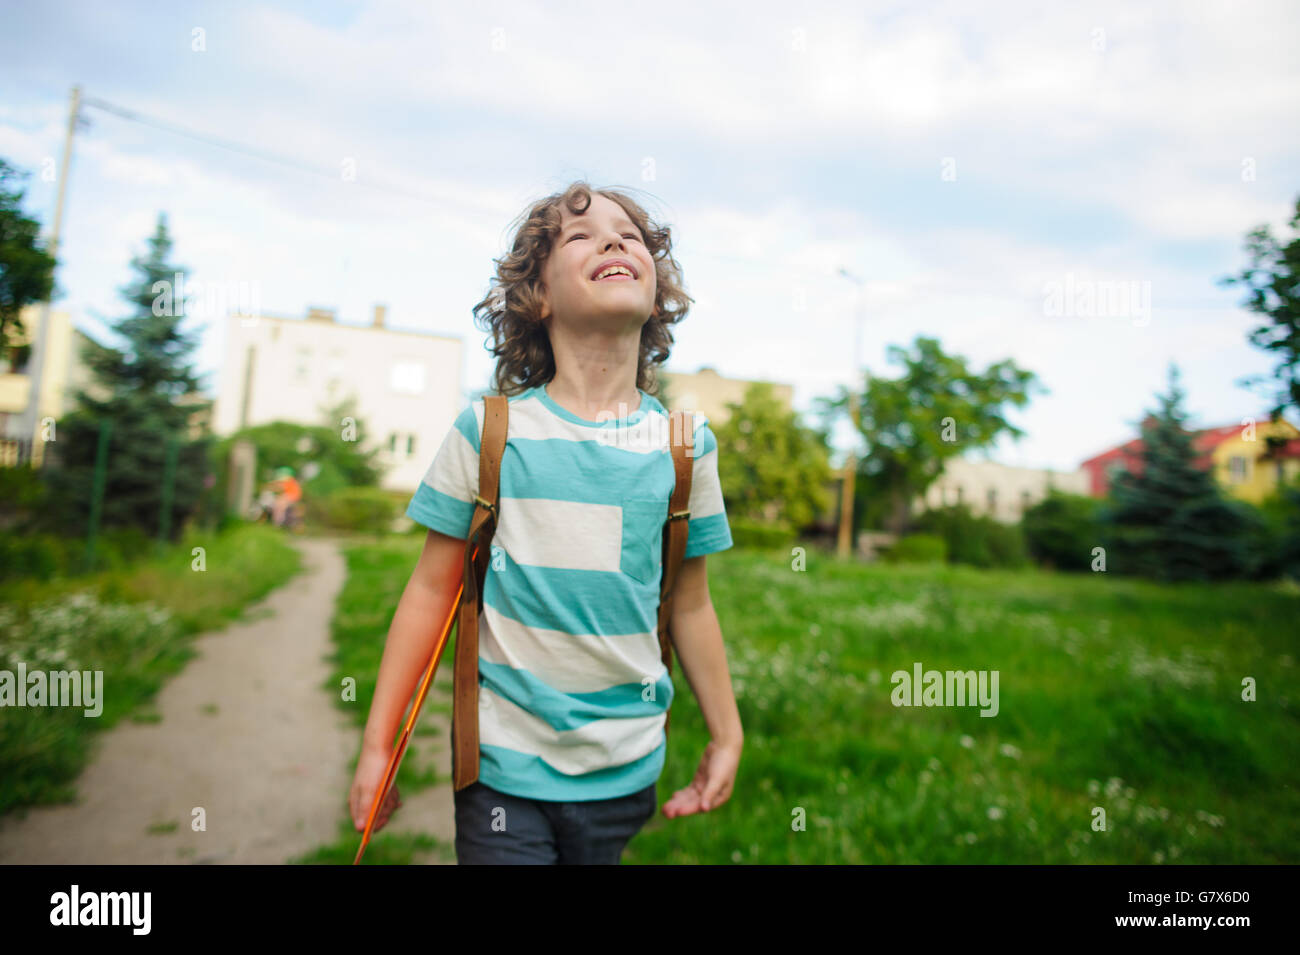 The school student comes back from school in good mood. The boy goes on a footpath. He has raised eyes to the sky - Stock Image